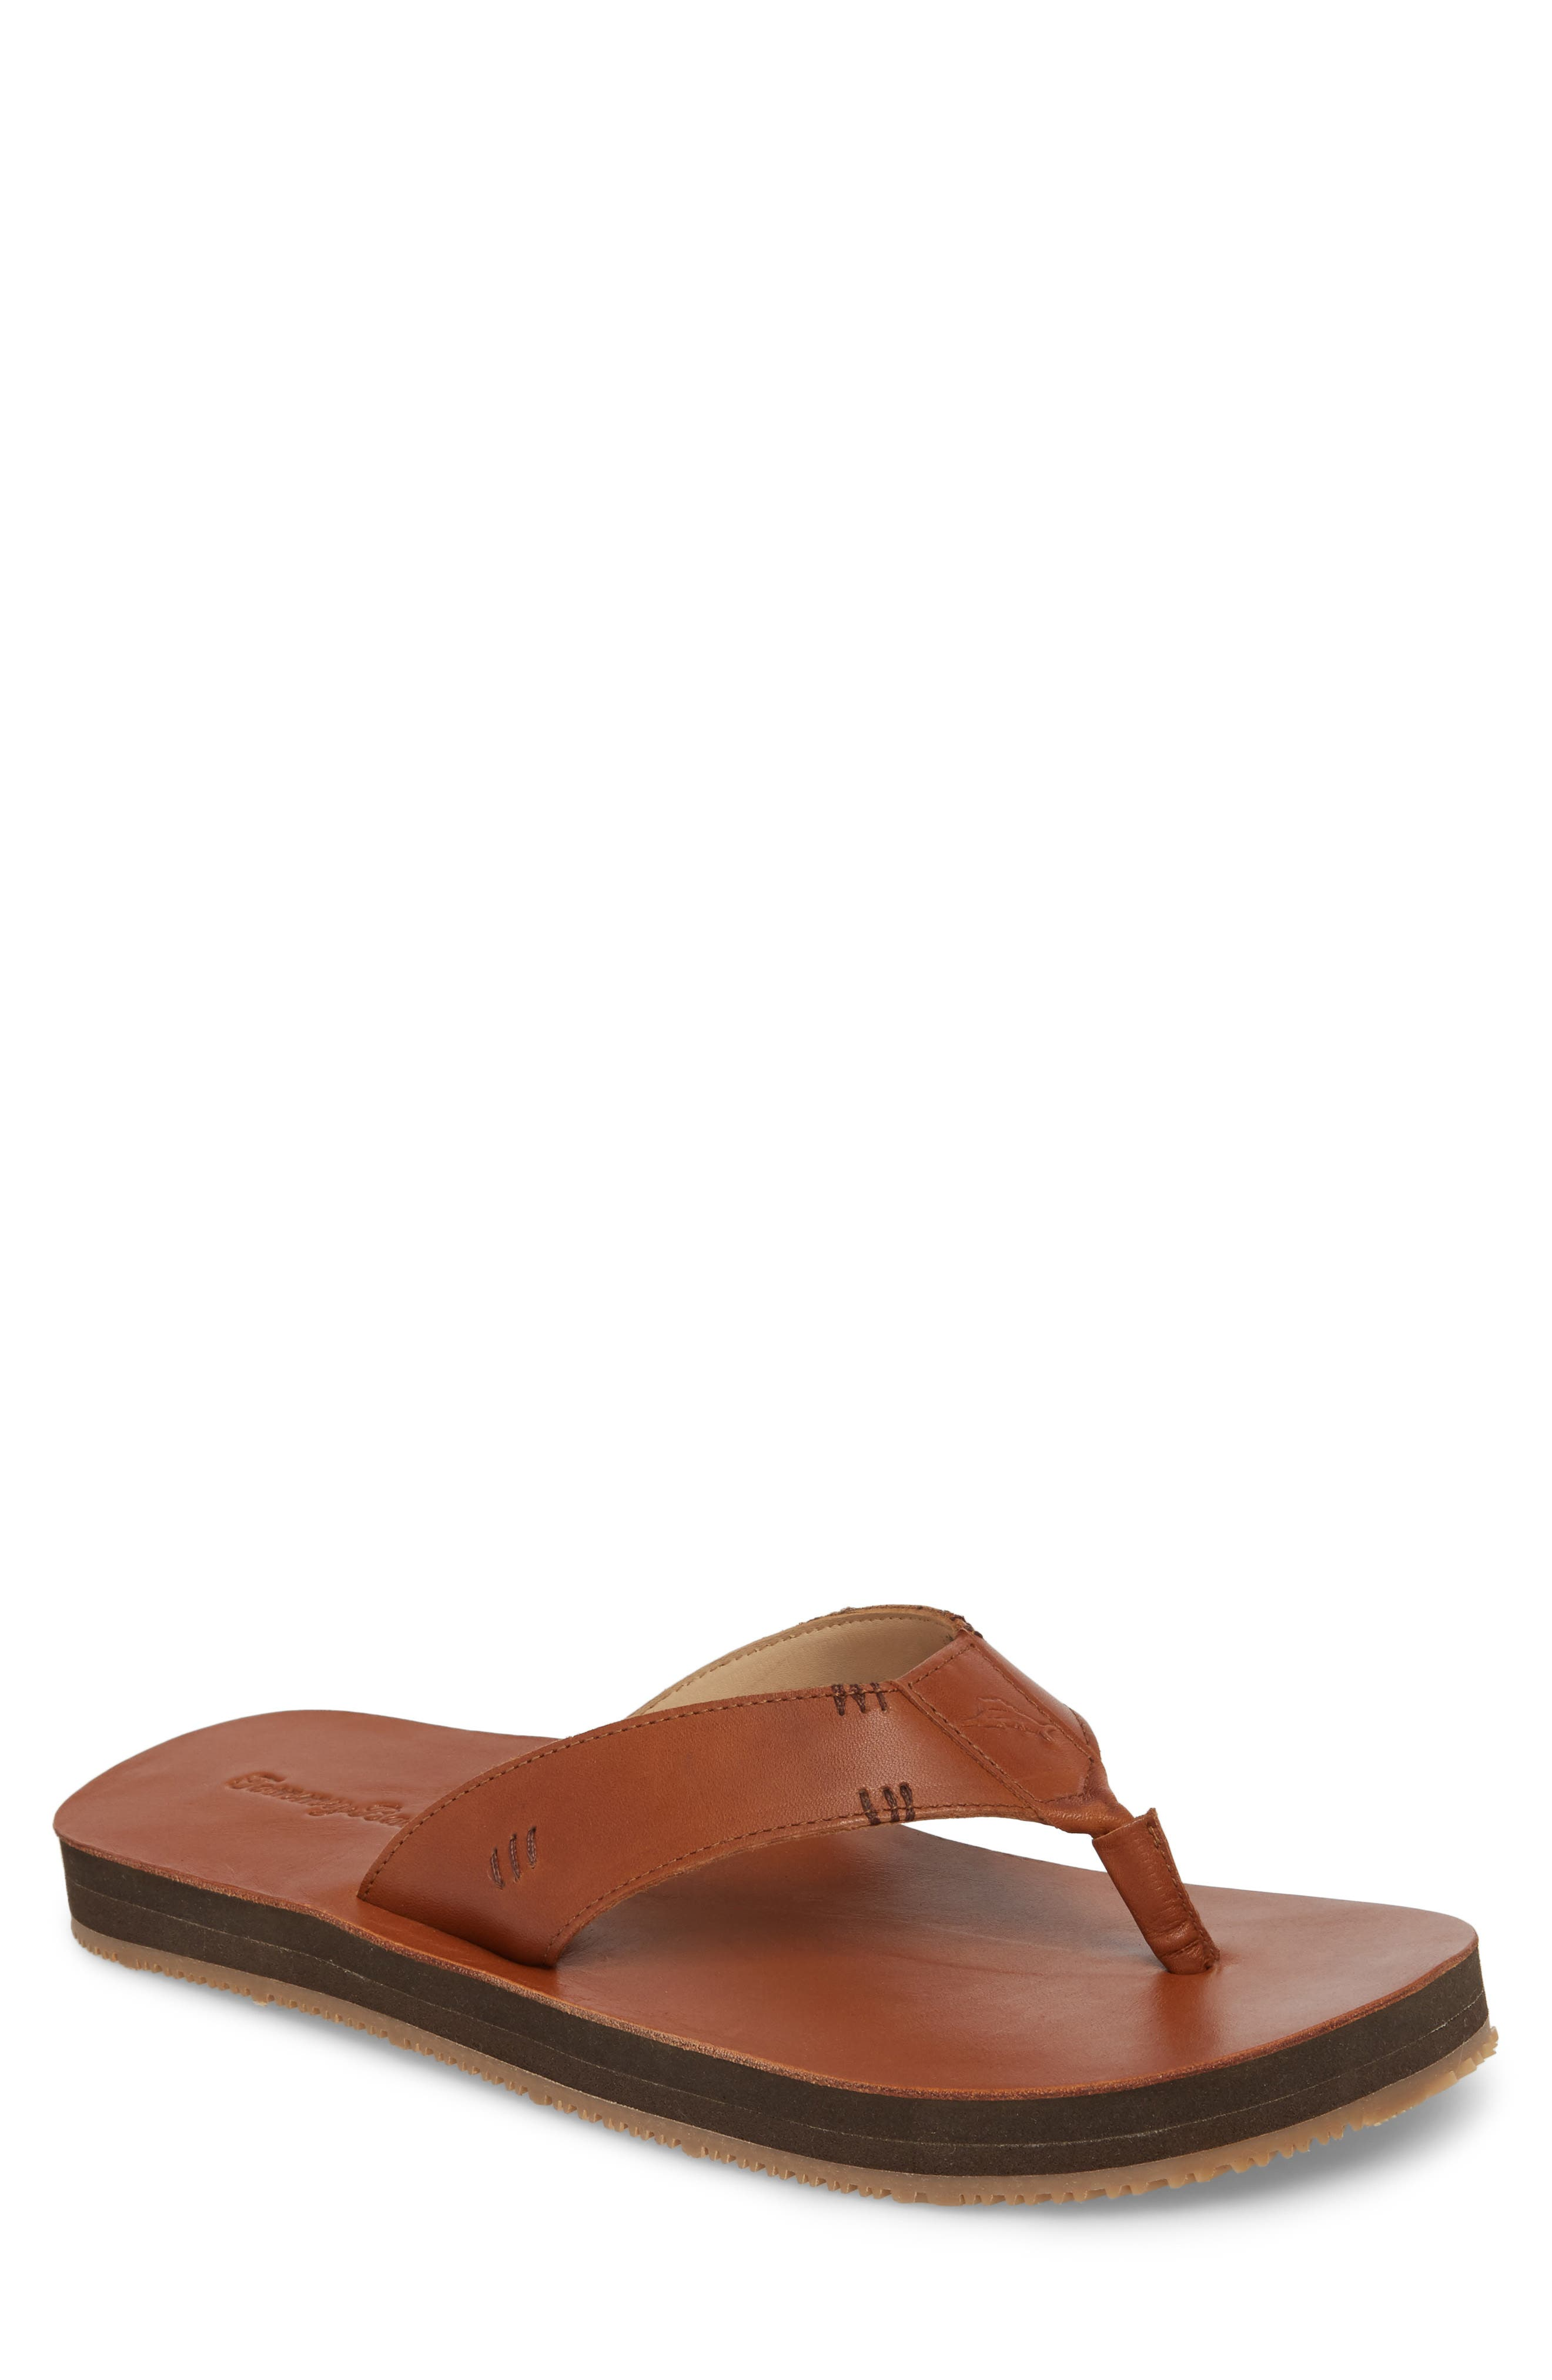 TOMMY BAHAMA Adderly Flip Flop, Main, color, TAN LEATHER